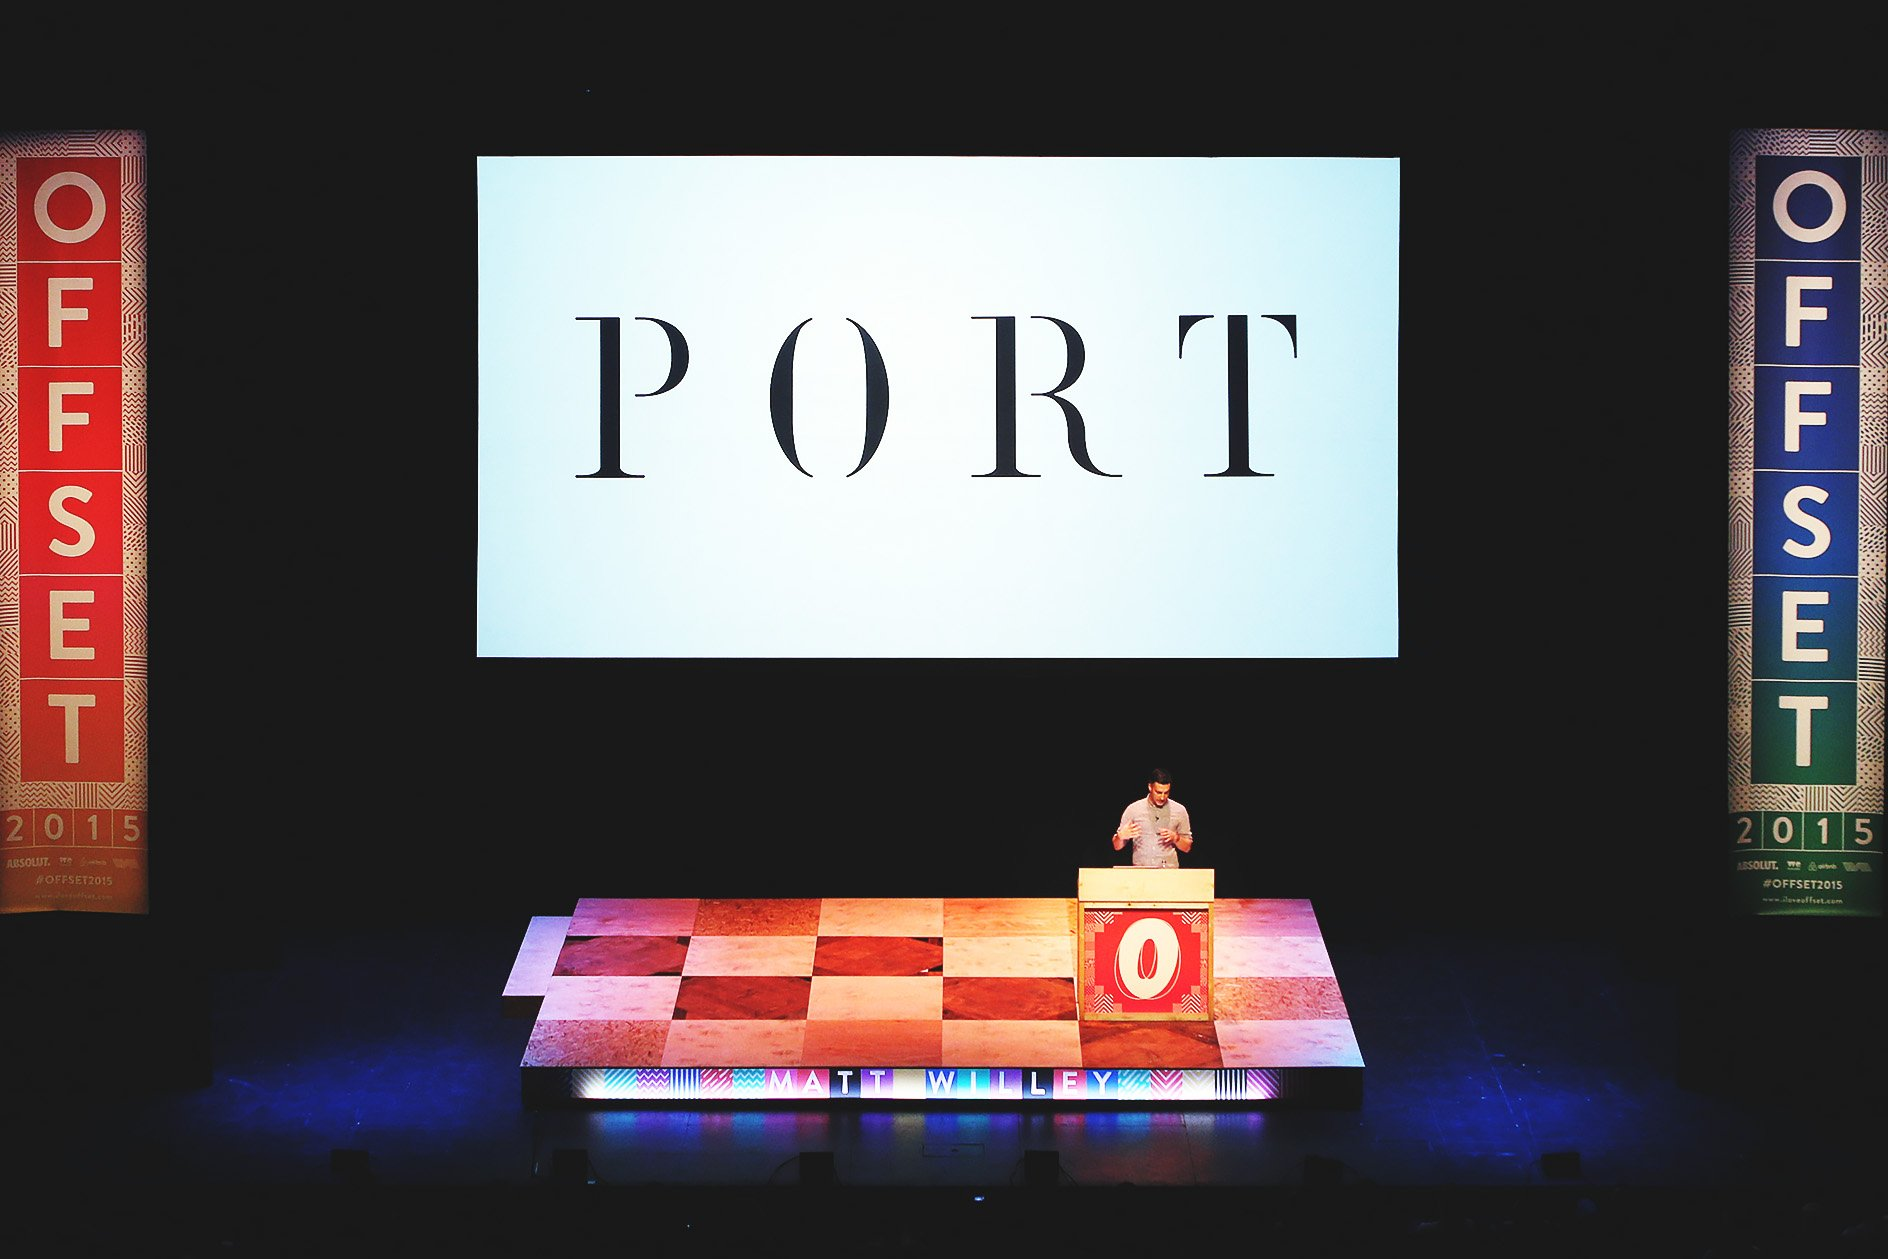 Matt Willey at OFFSET 2015 – Port Logo